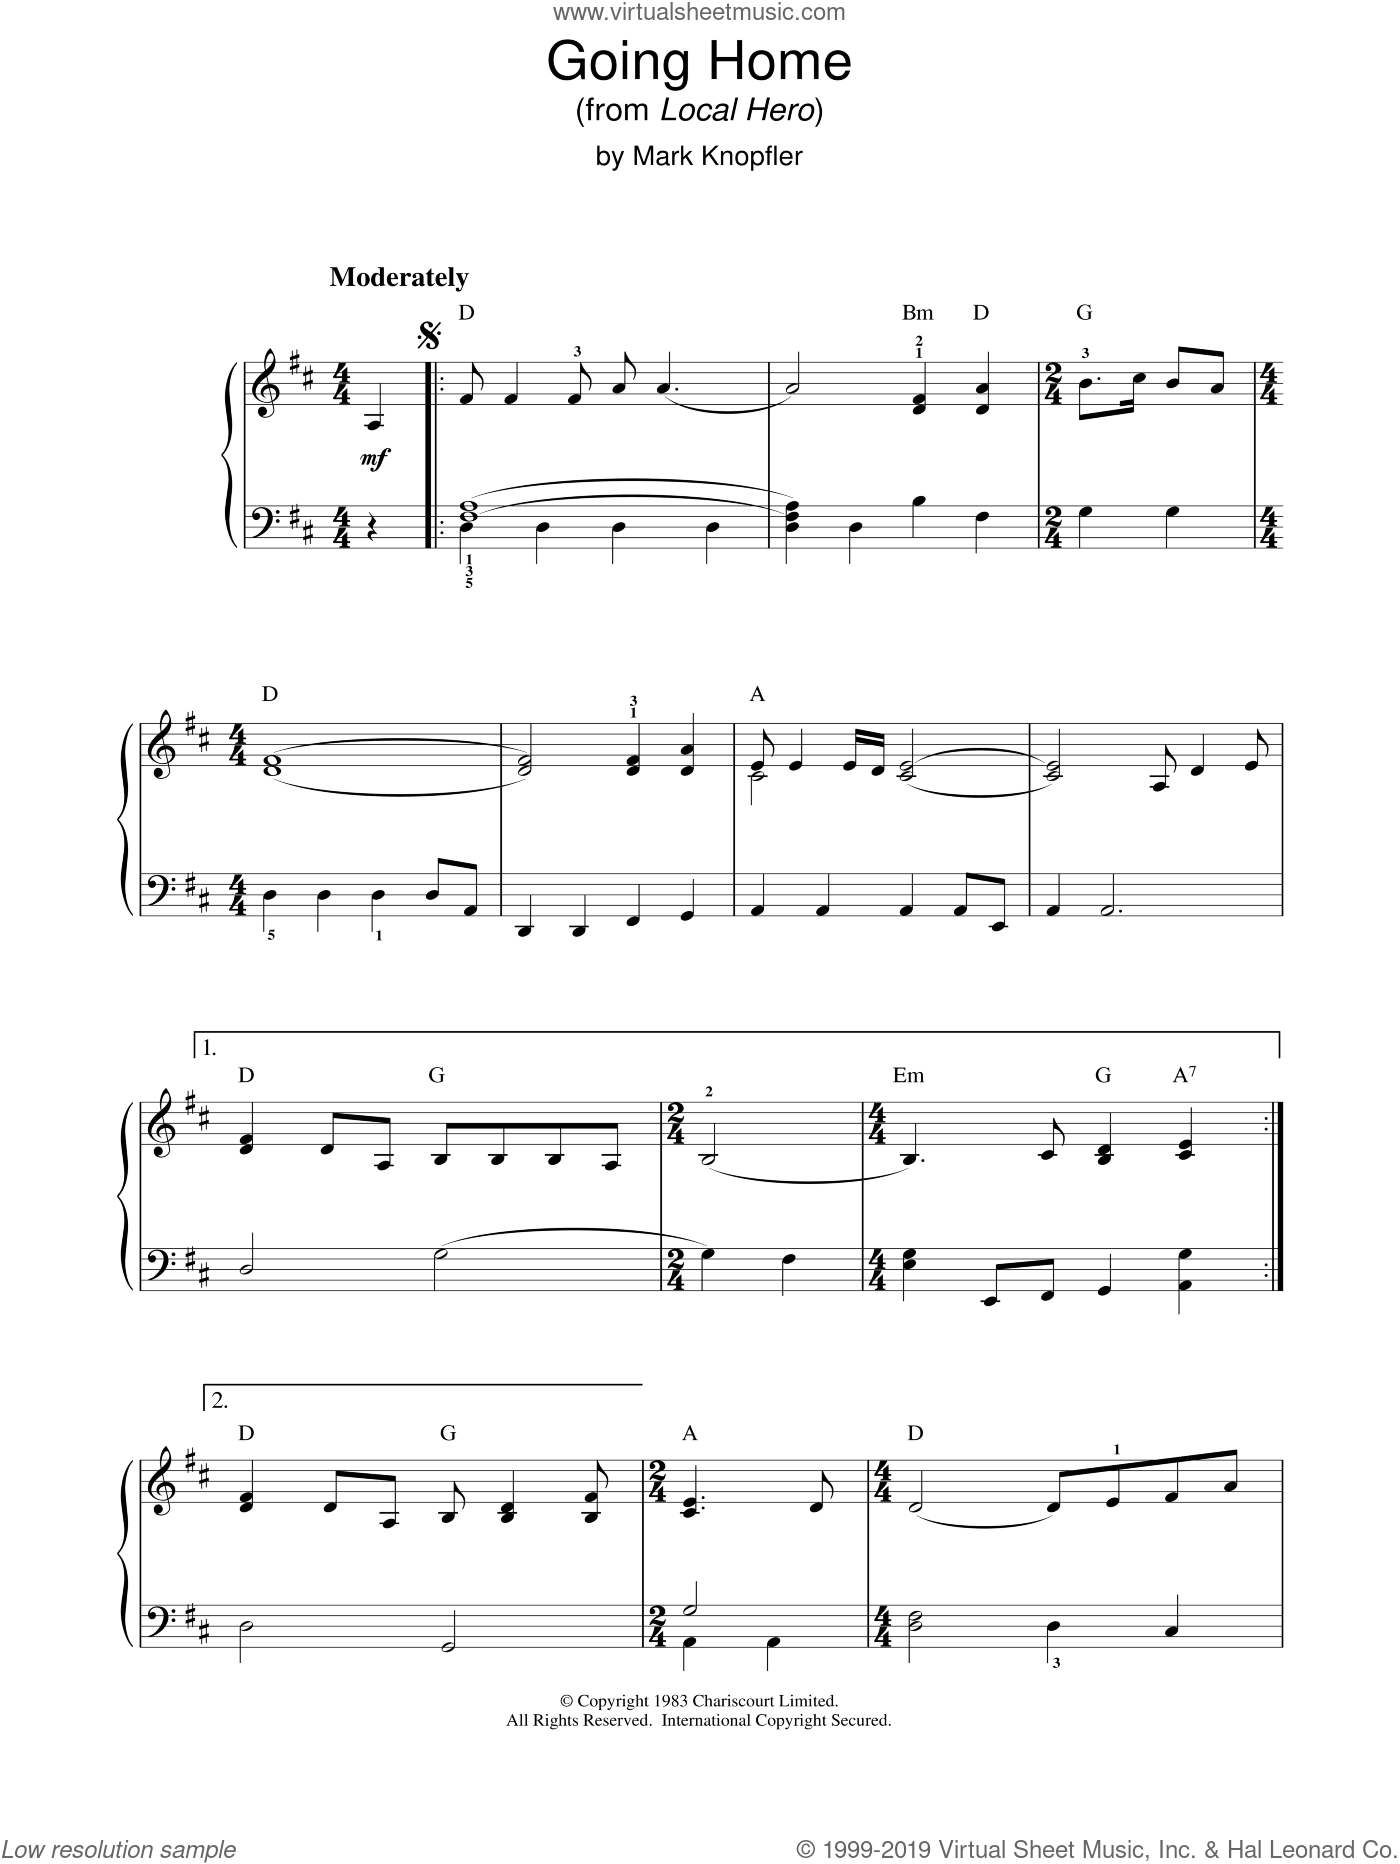 Going Home (from Local Hero) sheet music for piano solo by Mark Knopfler, intermediate skill level